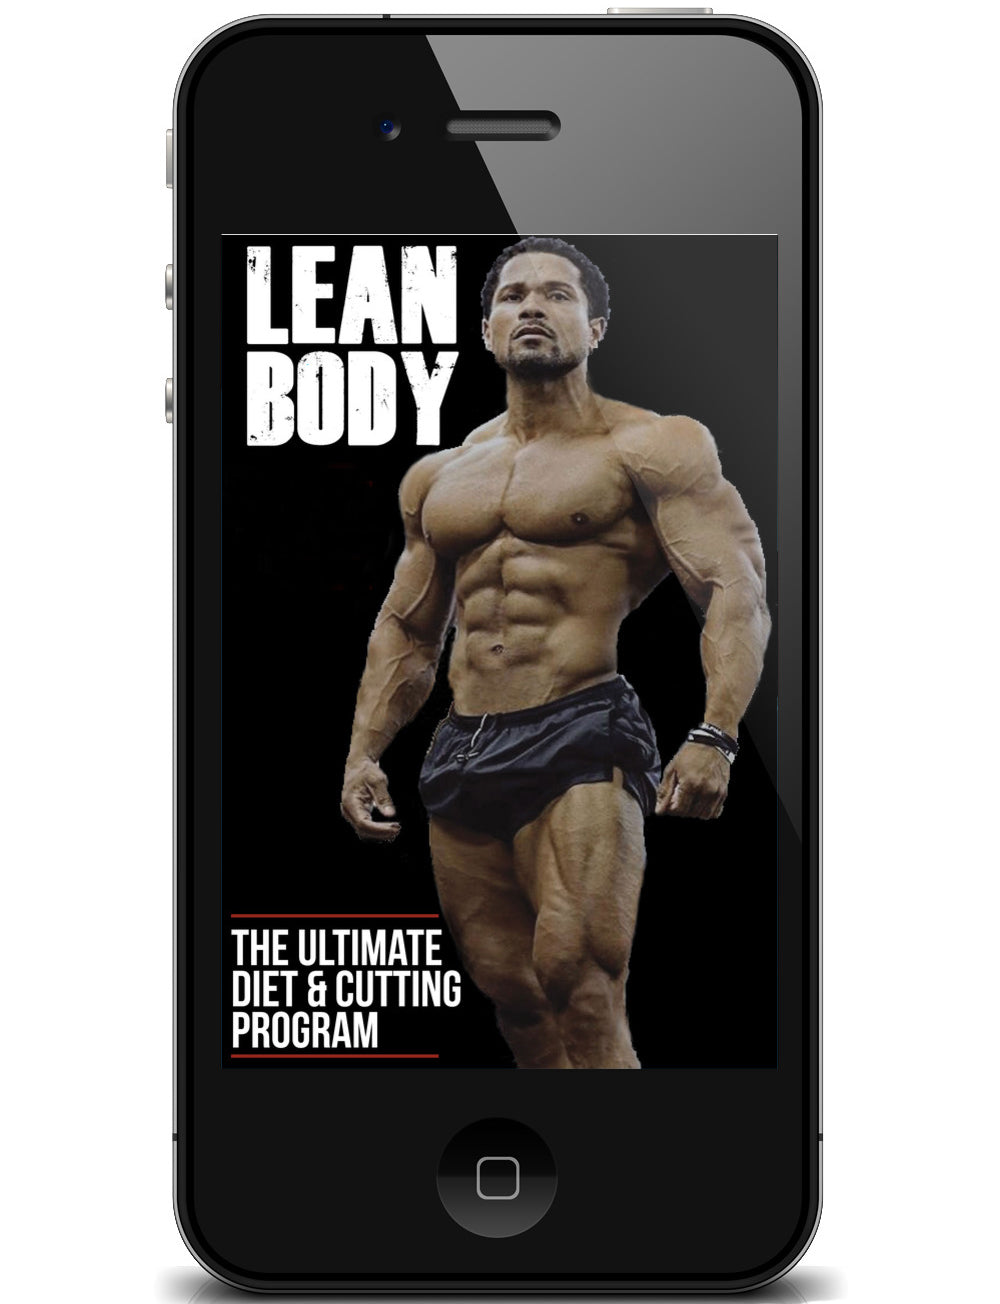 LEAN BODY- The ultimate diet and cutting program